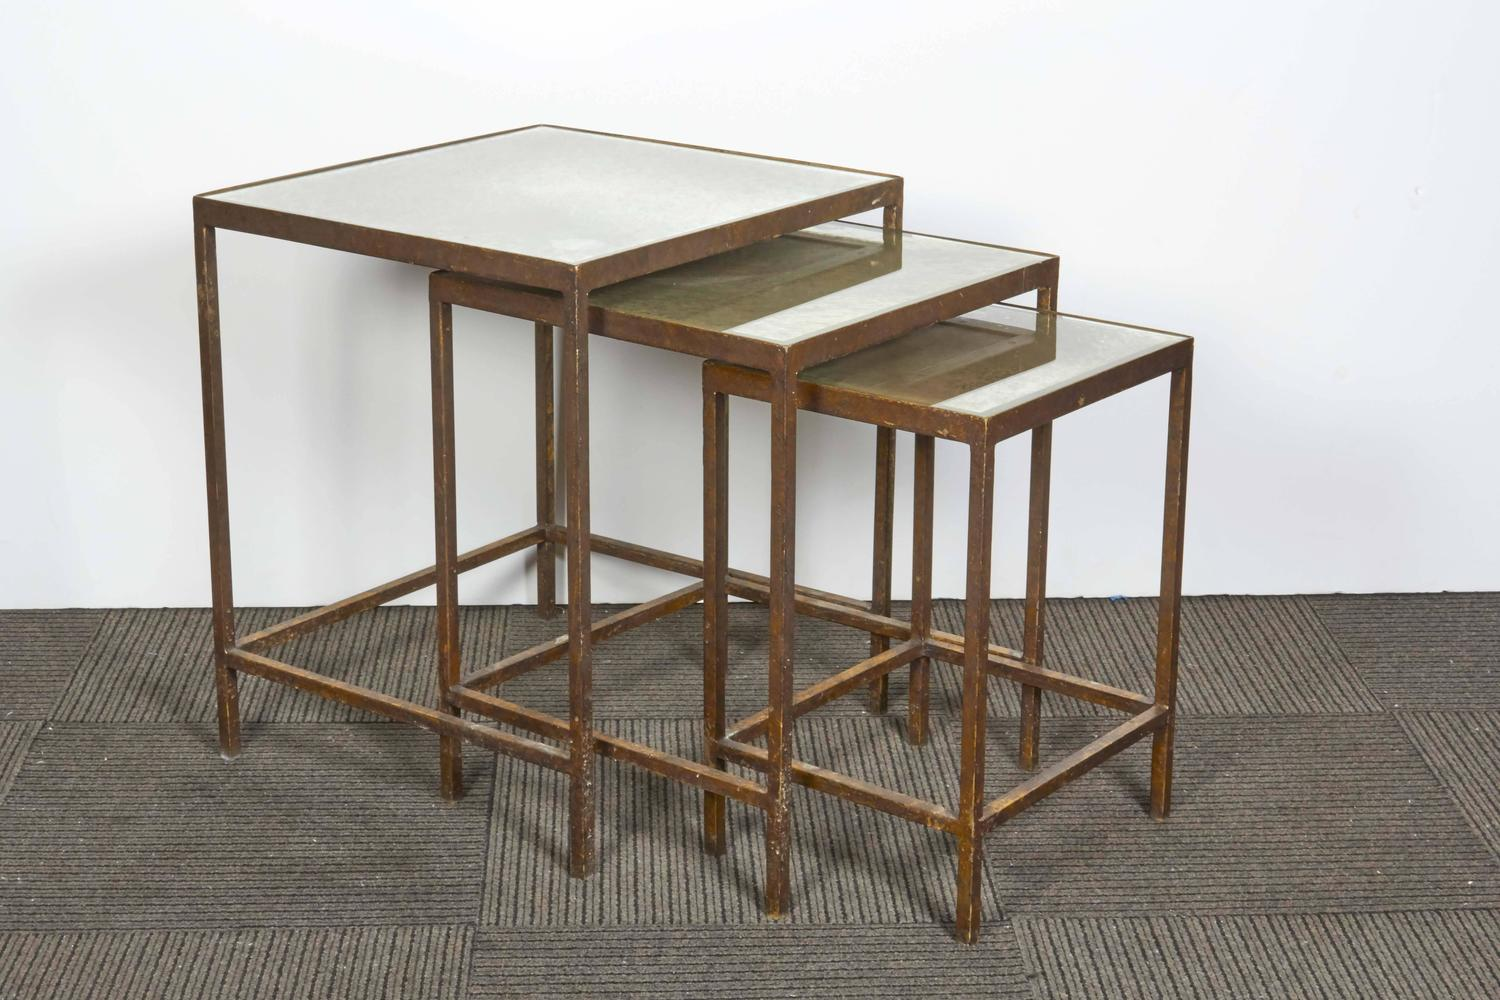 Set of three gilt metal nesting tables with mirrored tops